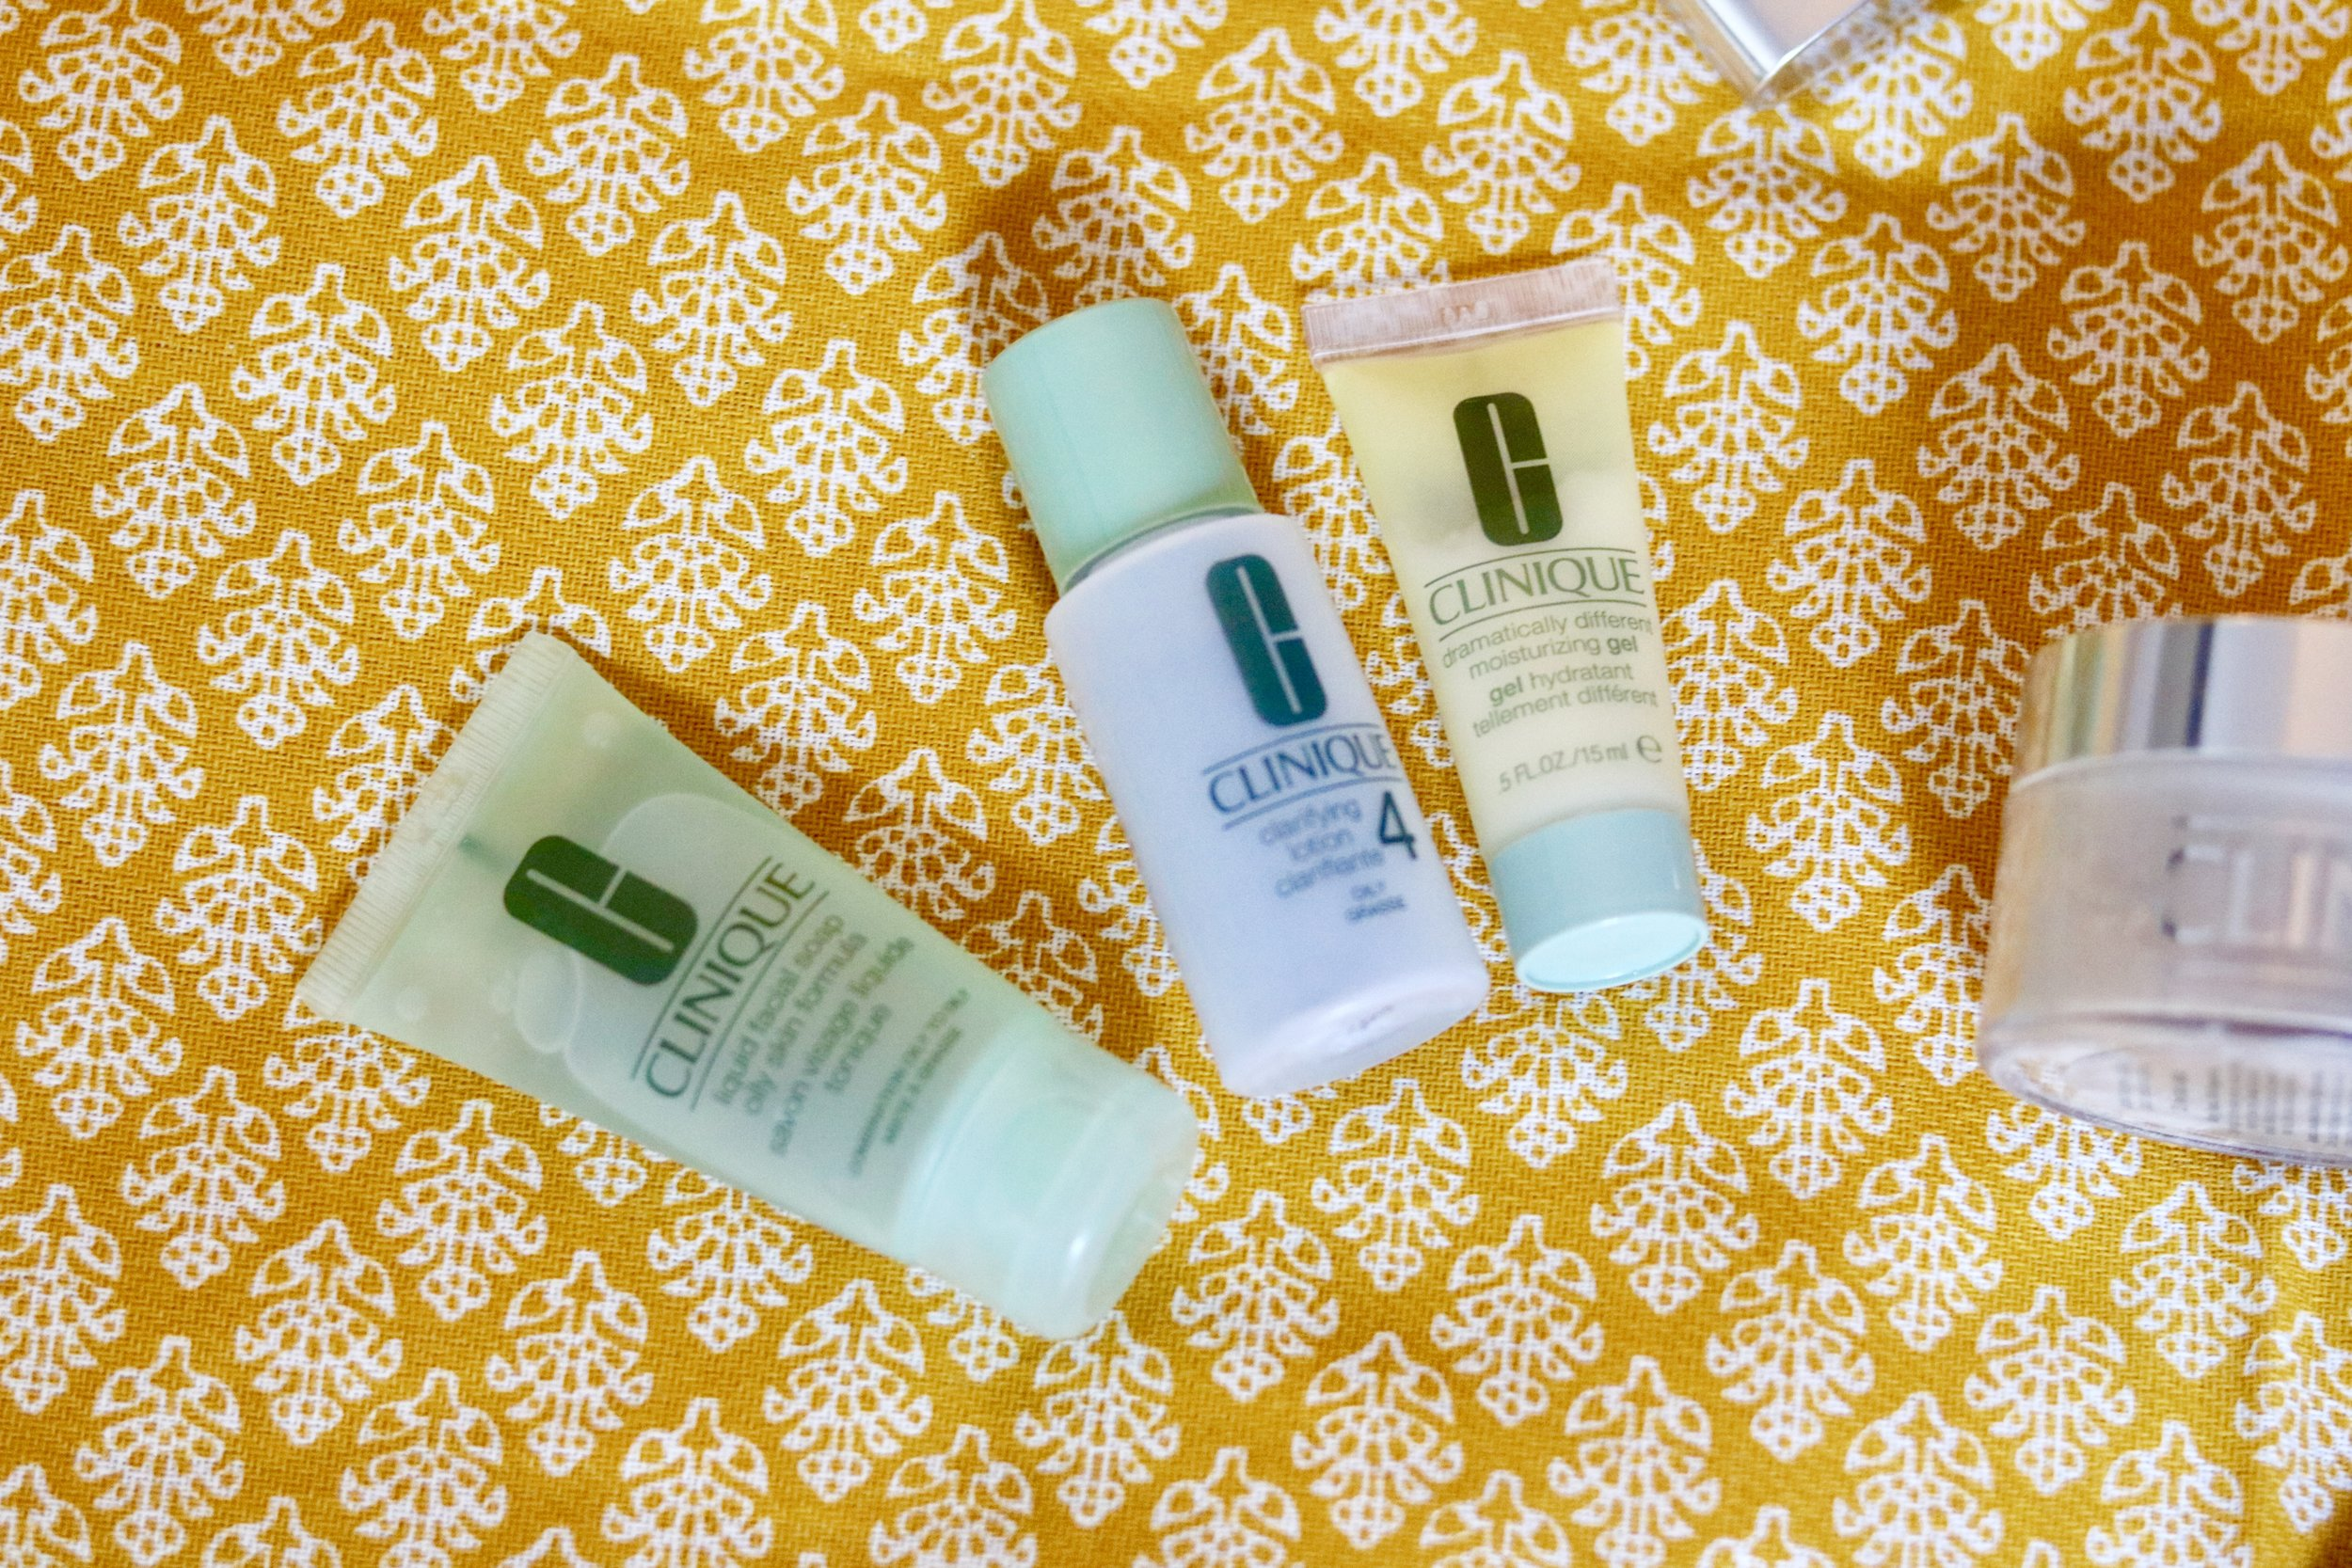 clinique products for oily skin, best products for oily skin, skin care routine for oily skin